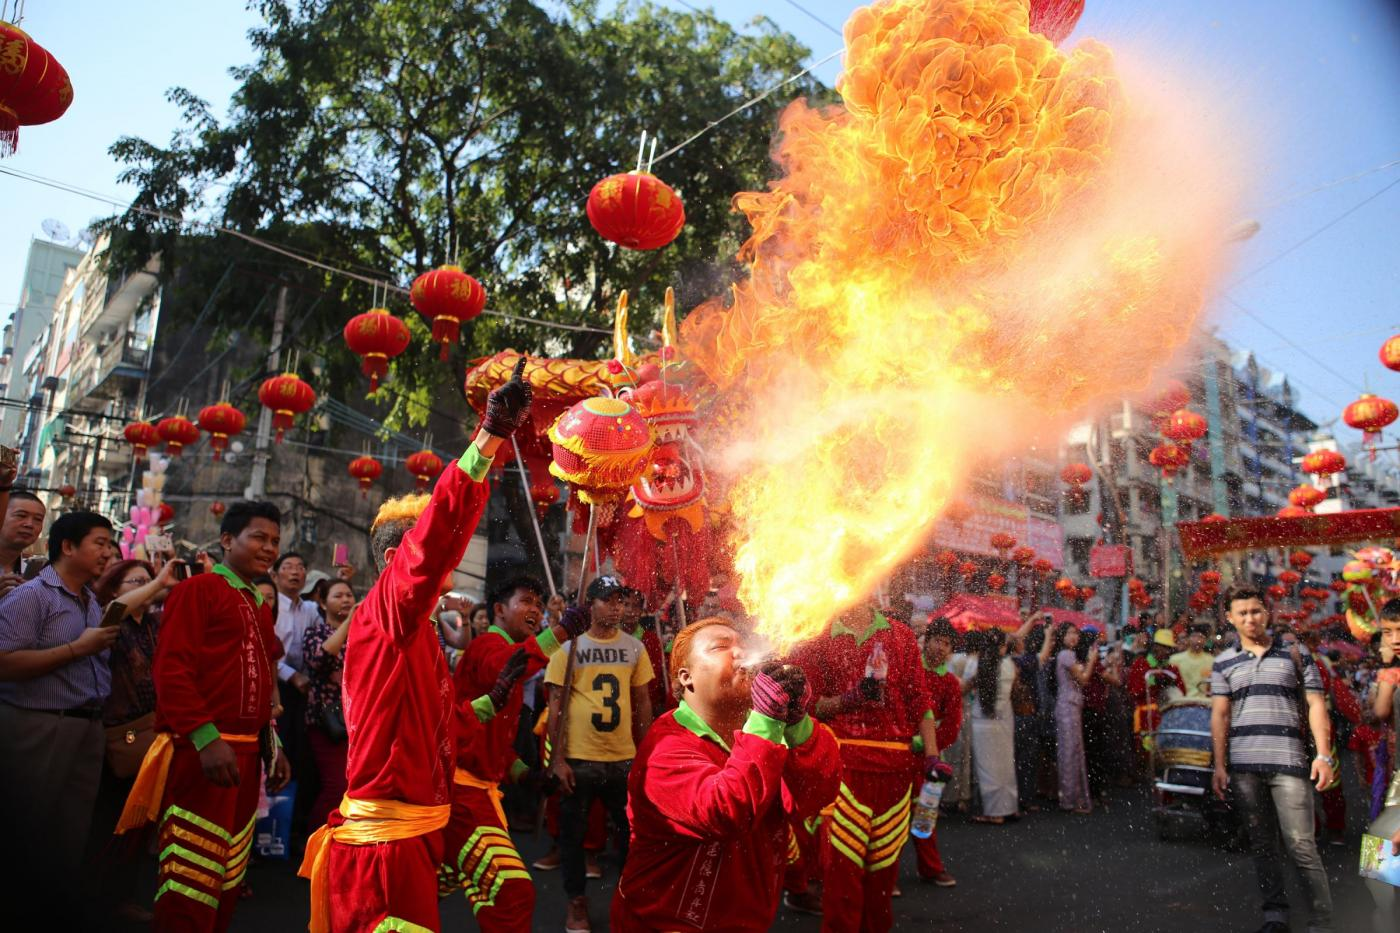 (170128) -- YANGON, Jan. 28, 2017 (Xinhua) -- Dragon dancers perform during the Chinese Lunar New Year celebration in the Chinatown of Yangon, Myanmar, Jan. 28, 2017. Myanmar-Chinese began a grand celebration of the traditional Chinese New Year here on Saturday. (Xinhua/U Aung) ****Authorized by ytfs****